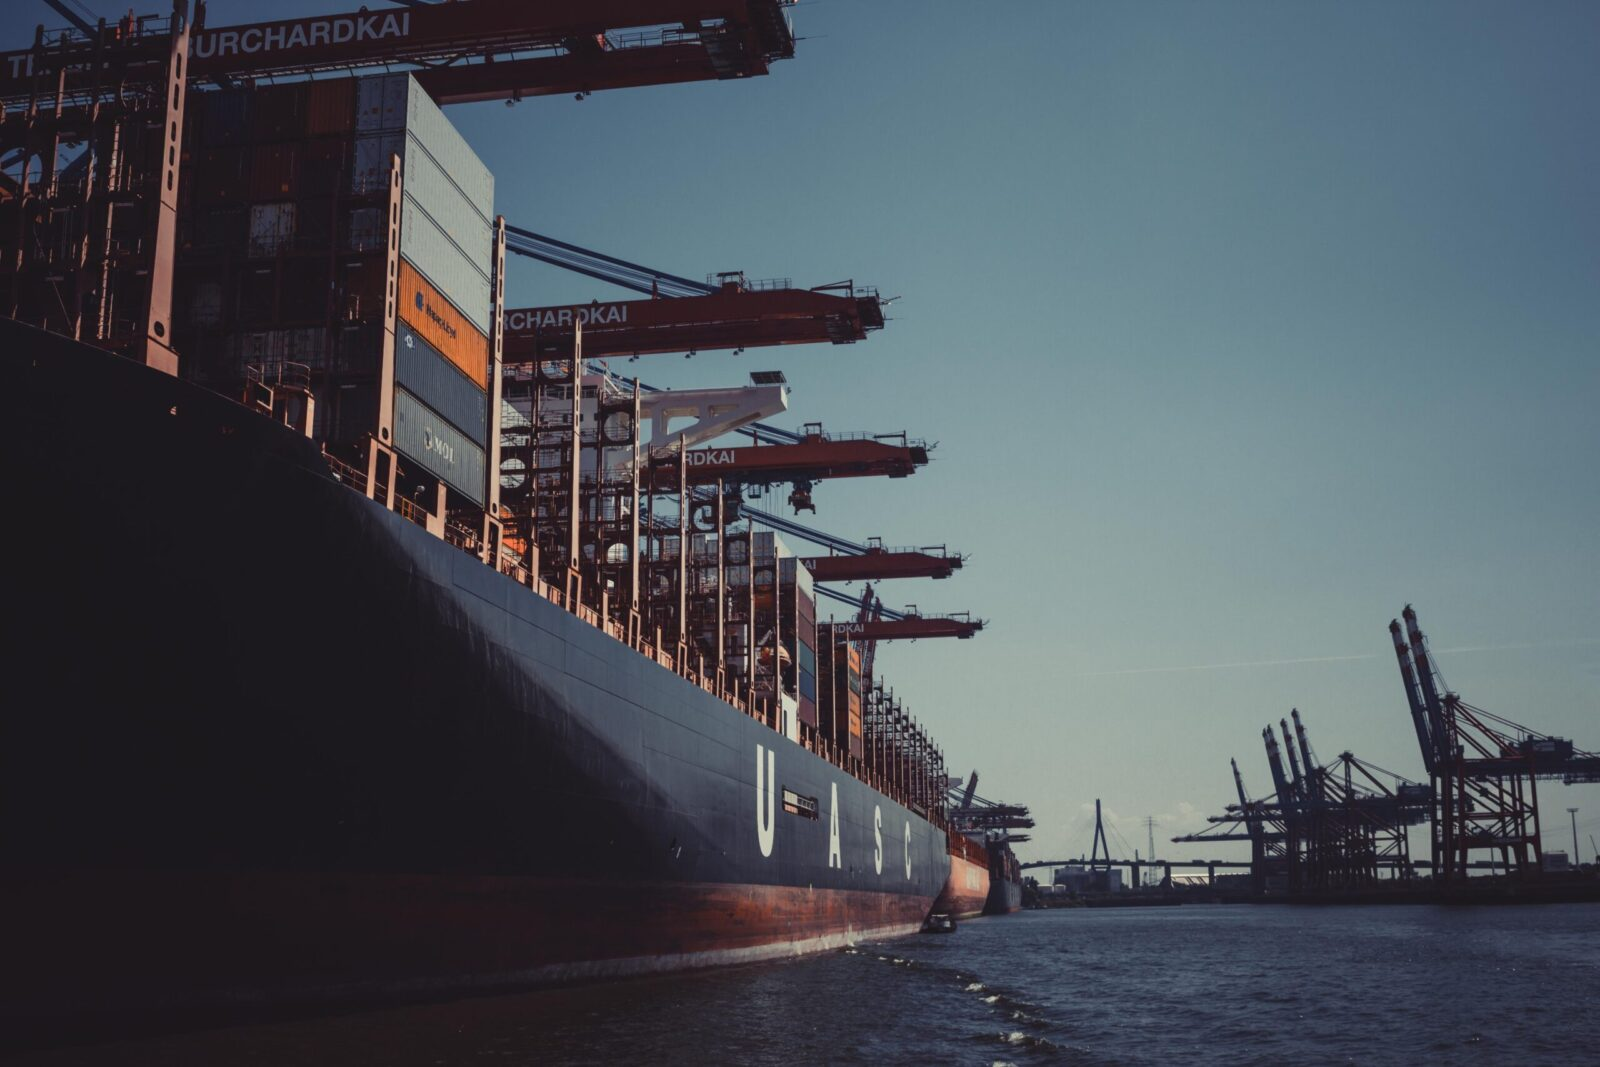 shallow-focus-photography-of-black-ship-1095814